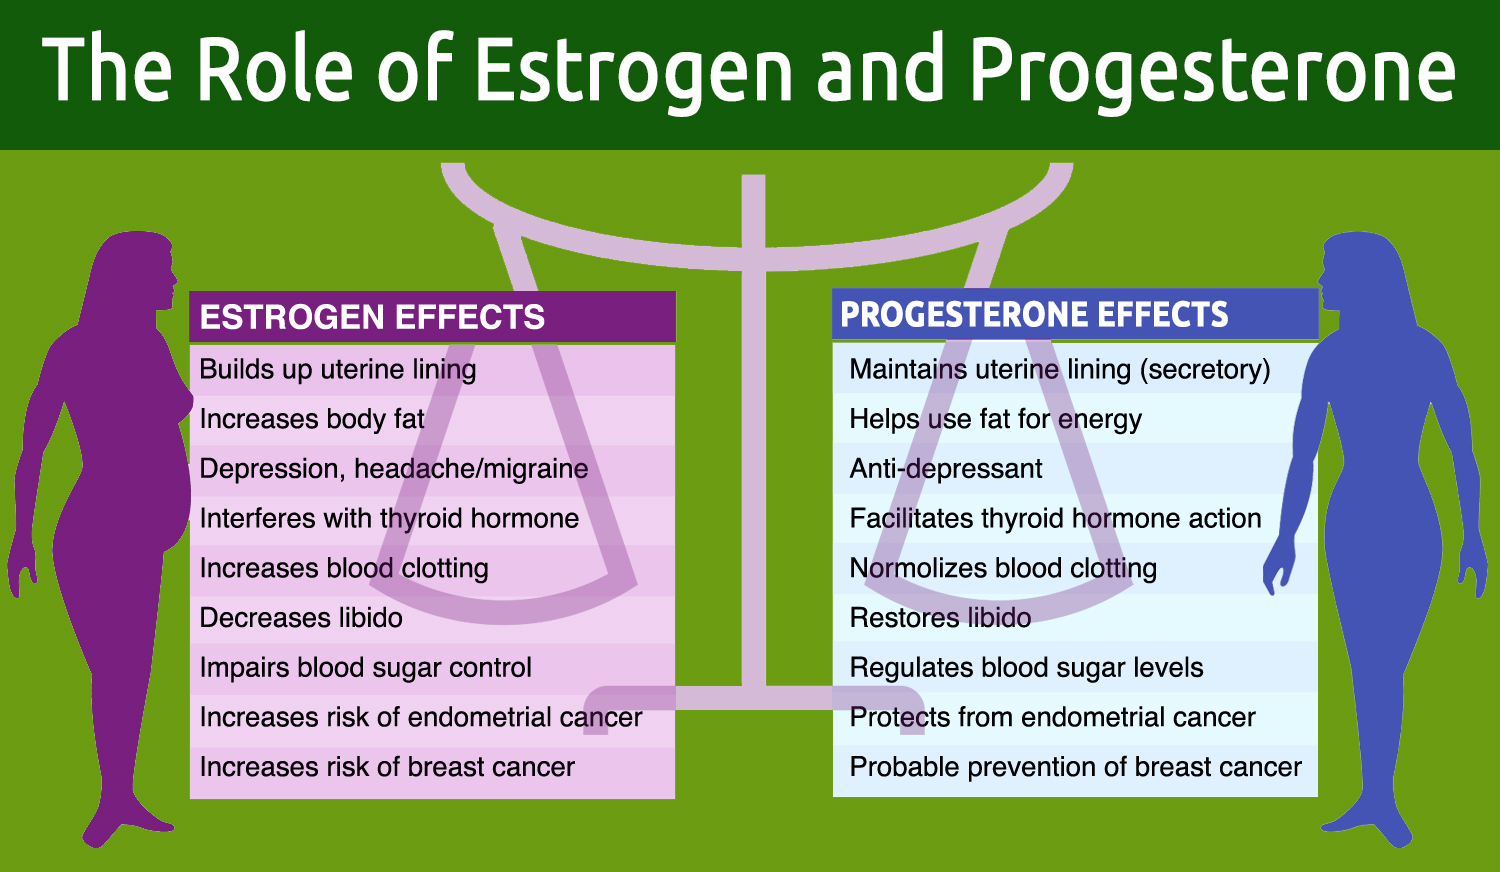 THE ROLES OF ESTROGEN AND PROGESTERONE